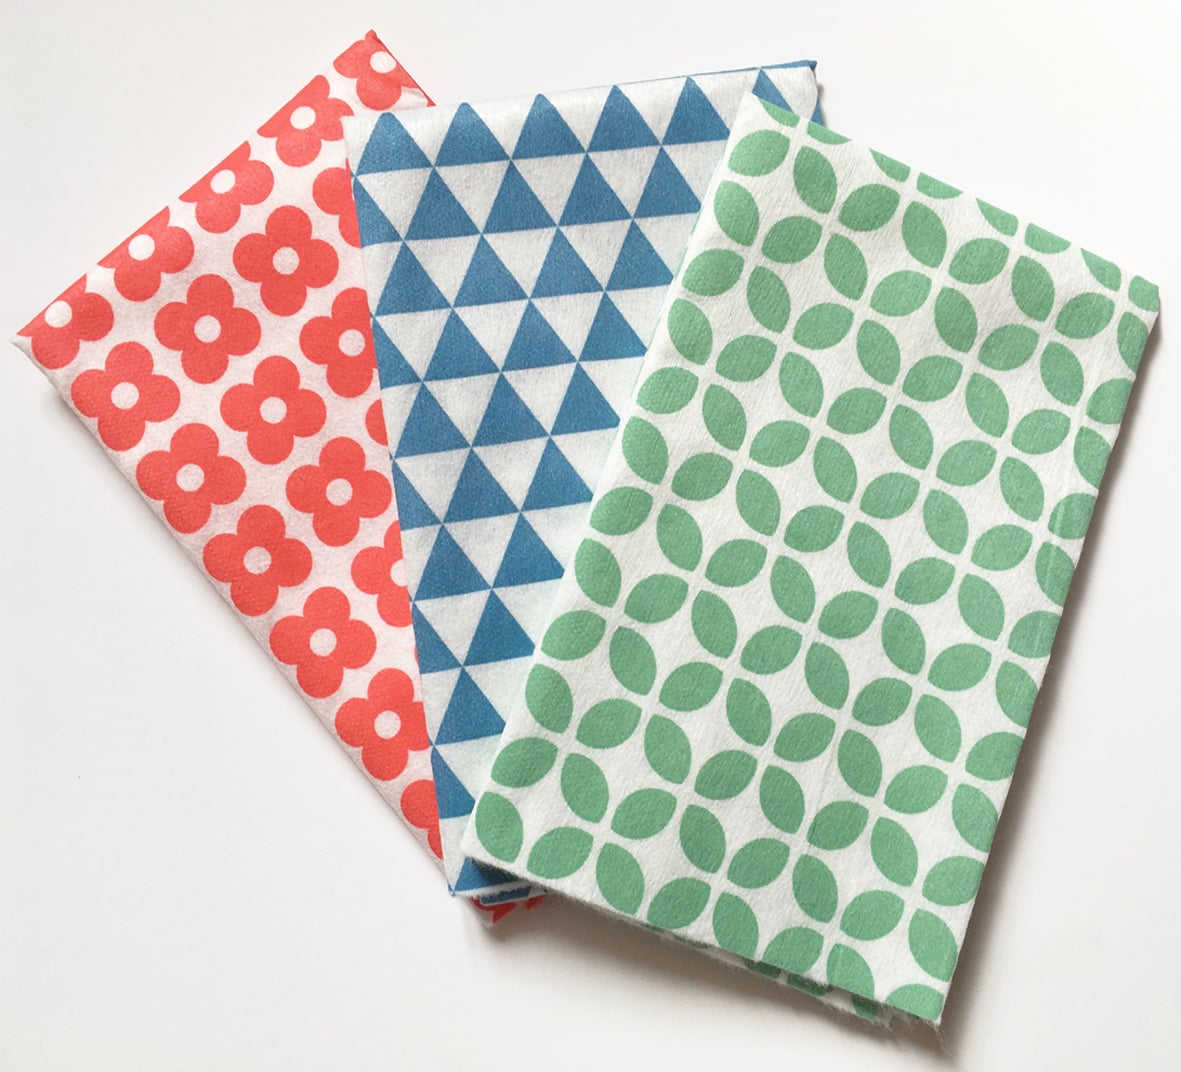 Image of Mixed Pattern Ultra Absorbent Cloths - 12 loose cloths  (4Red + 4Blue + 4Green) ***NEW***